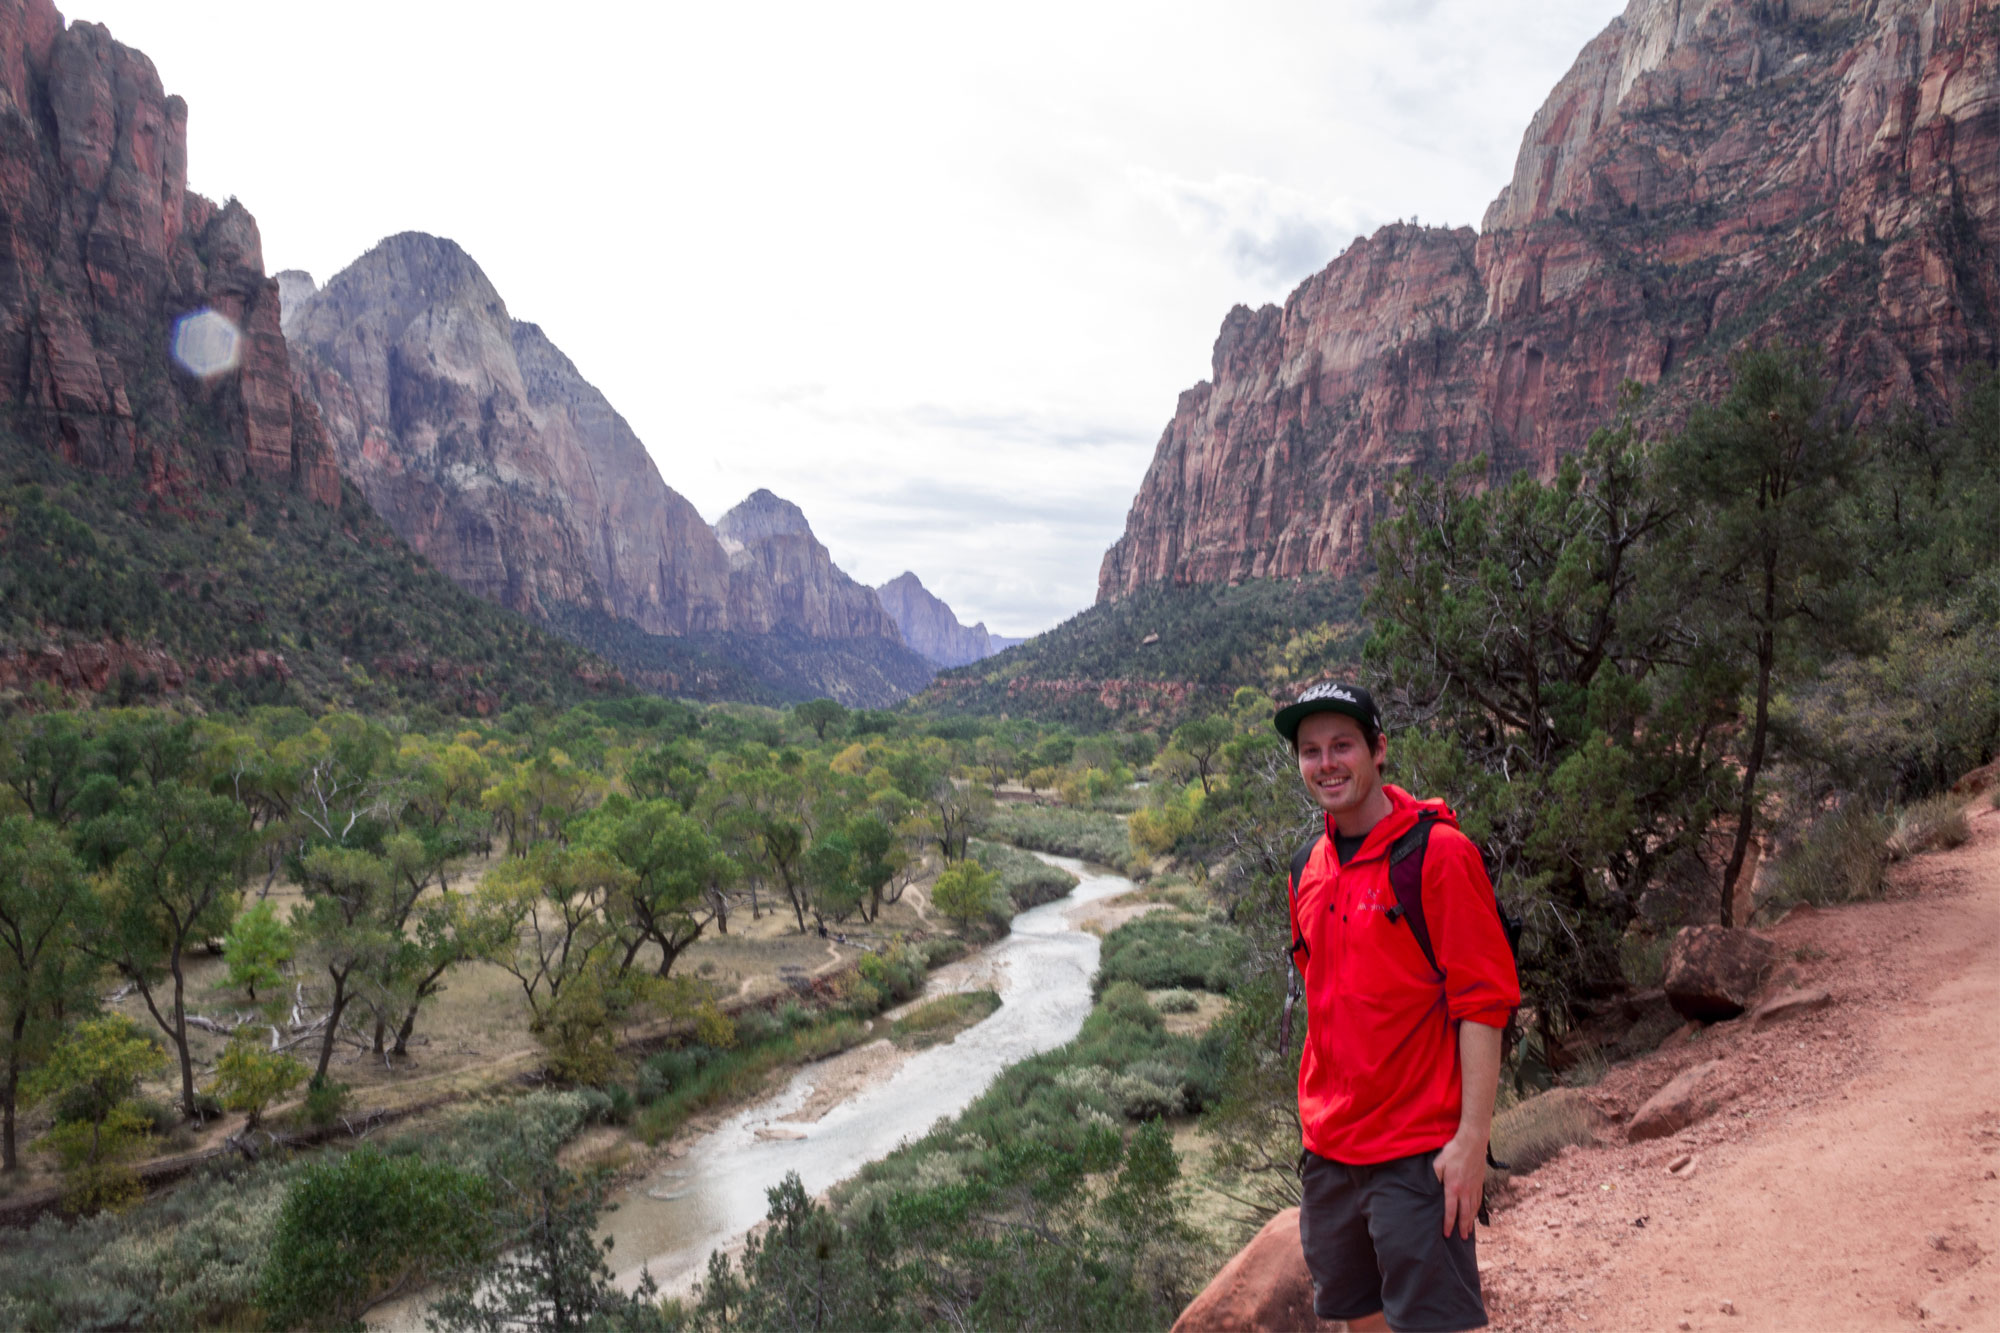 View of the canyon from Emerald Pool Trail - One of the best Zion National Park Hikes